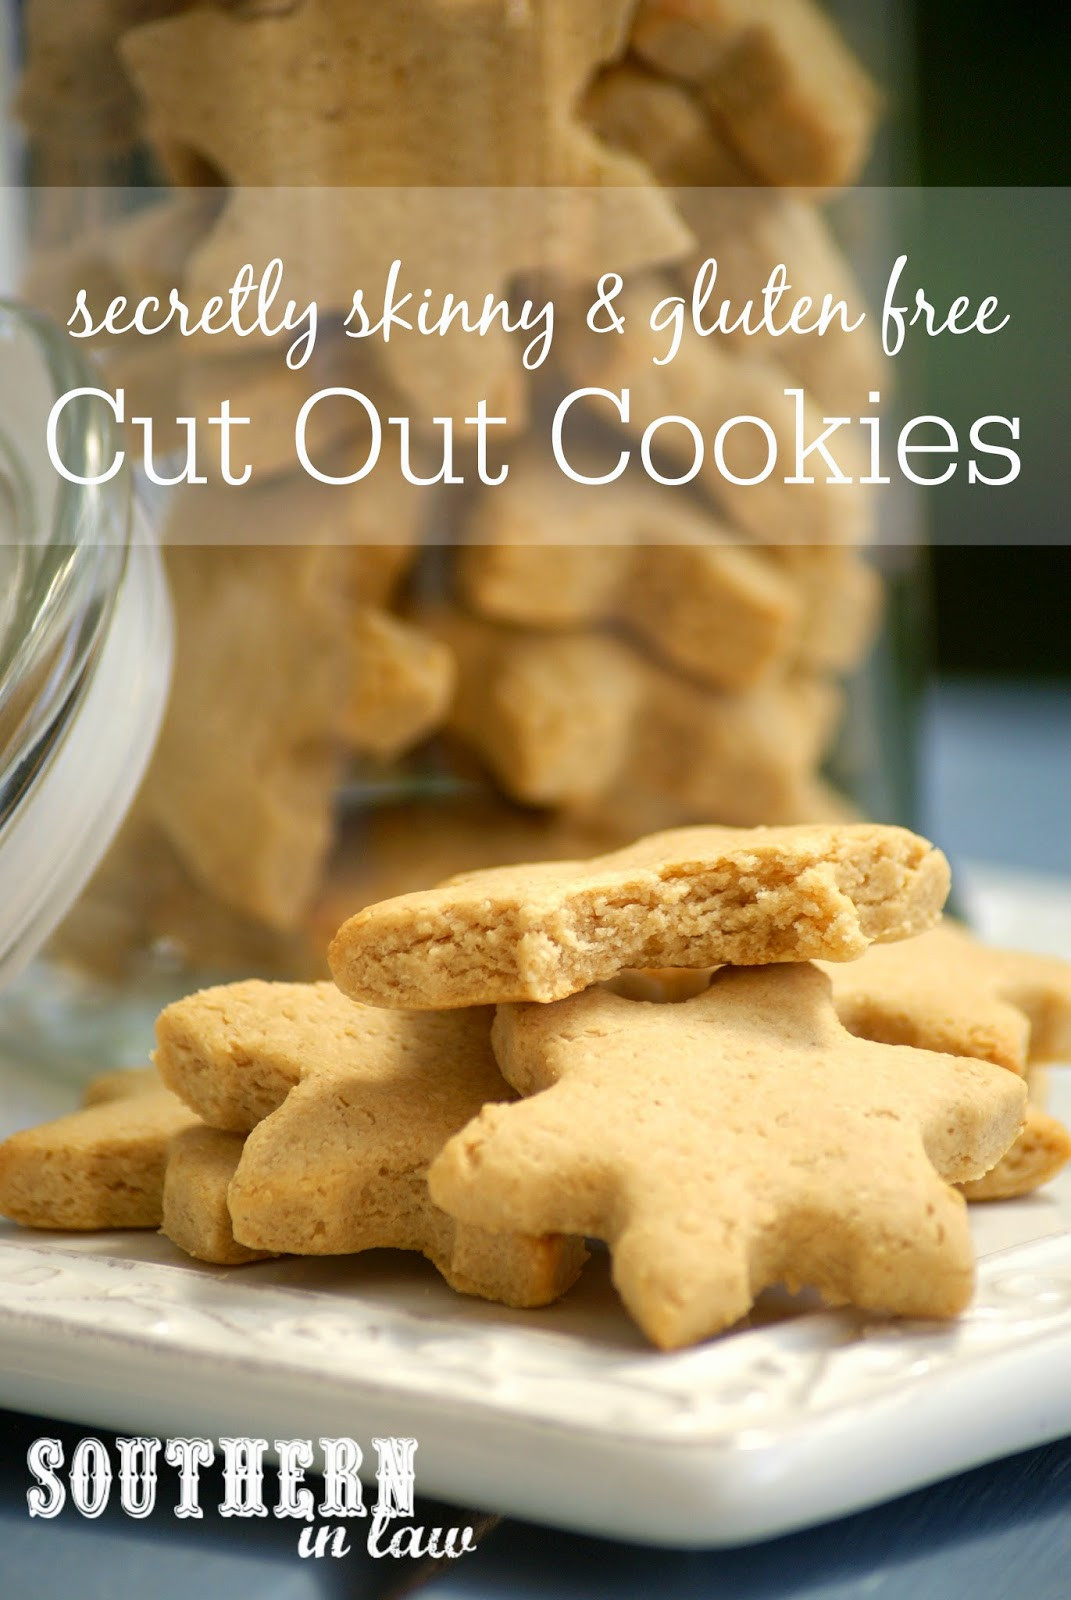 Low Fat Cookie Recipes  Southern In Law Recipe Healthier Cut Out Cookies